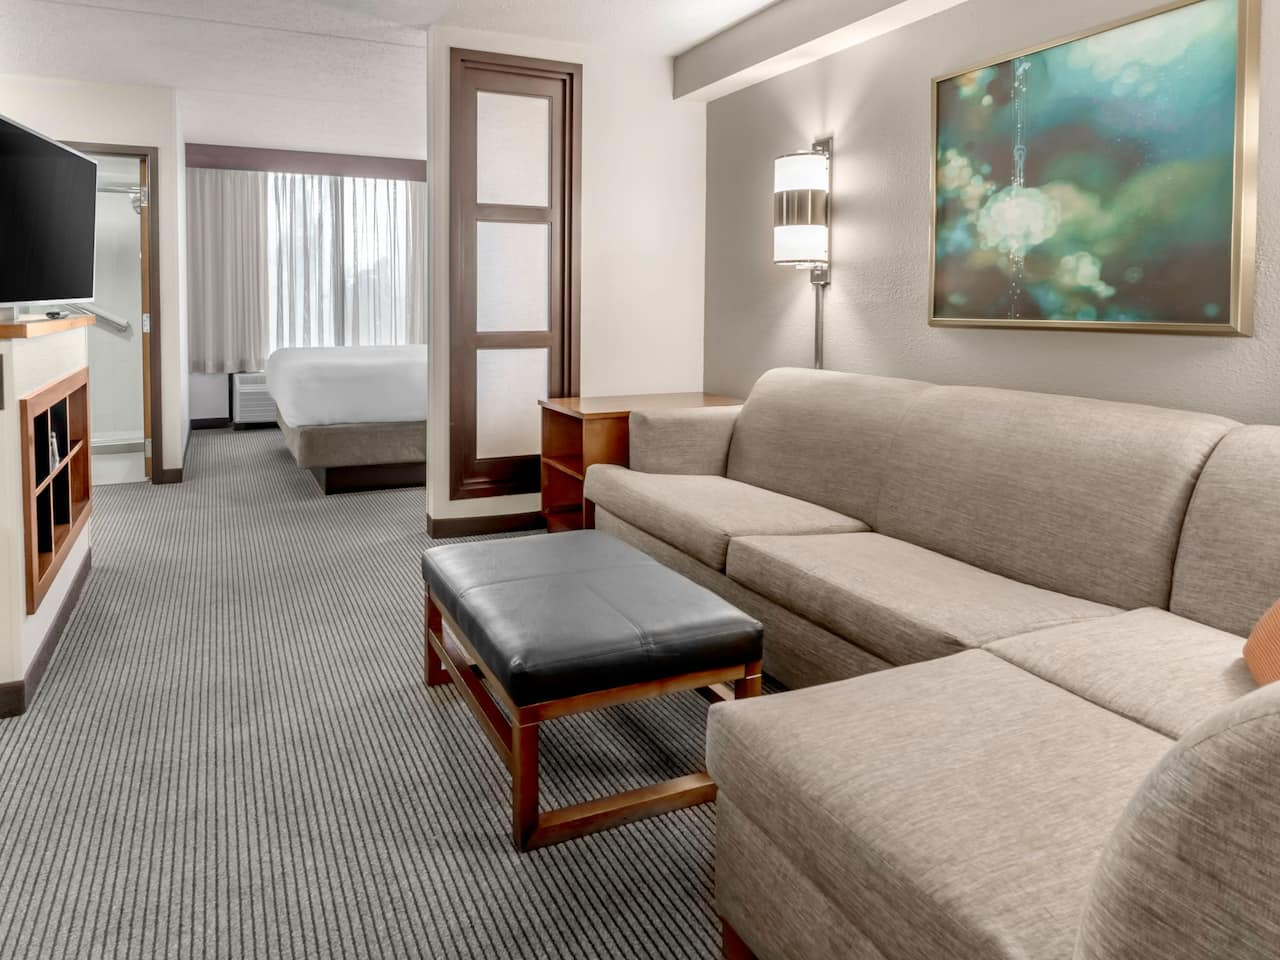 Hotel in Charlotte NC with King Bed plus Pull out Sofa Sleeper Bed at Hyatt Place Charlotte Airport / Tyvola